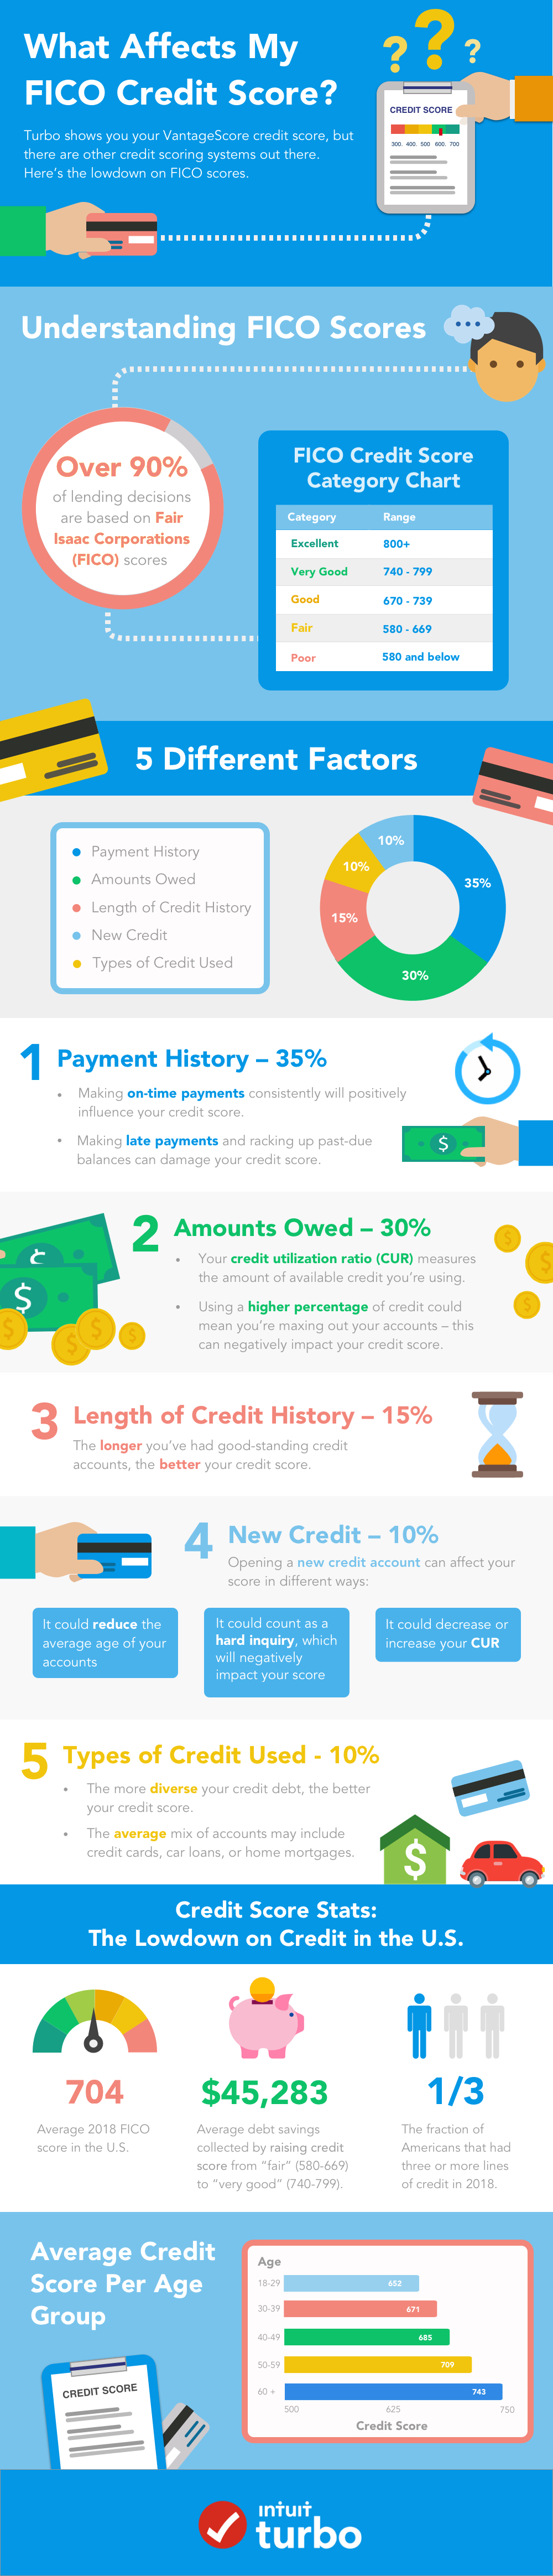 what affects my FICO credit score?